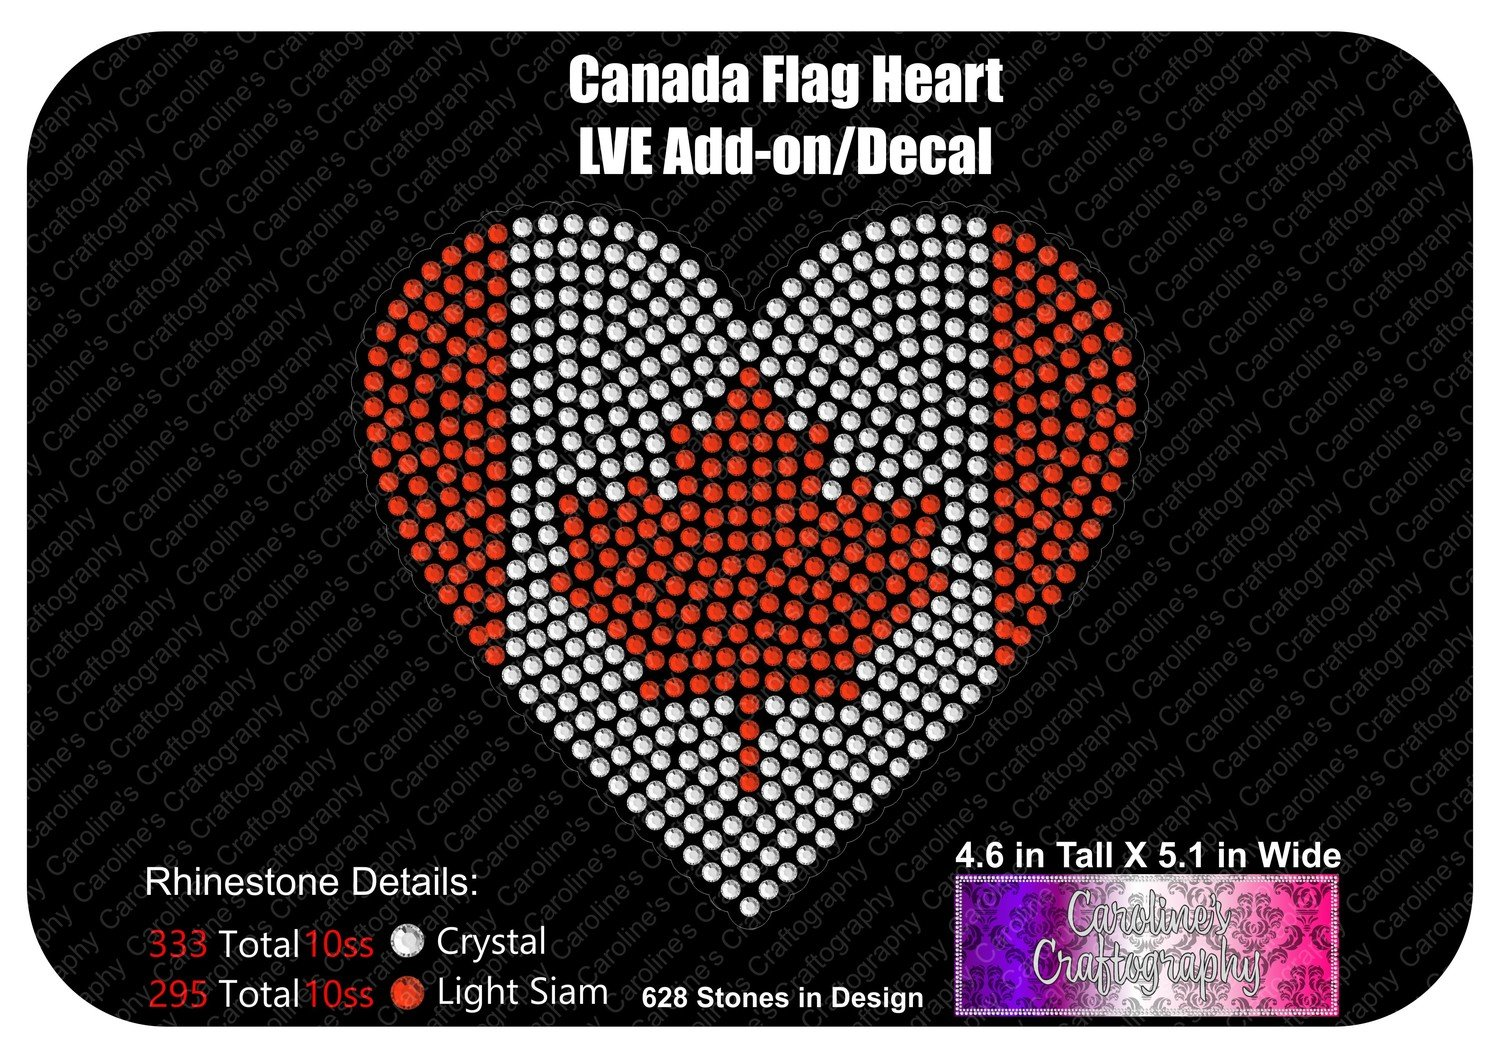 Canada Flag Heart Stone Decal LVE Add-on